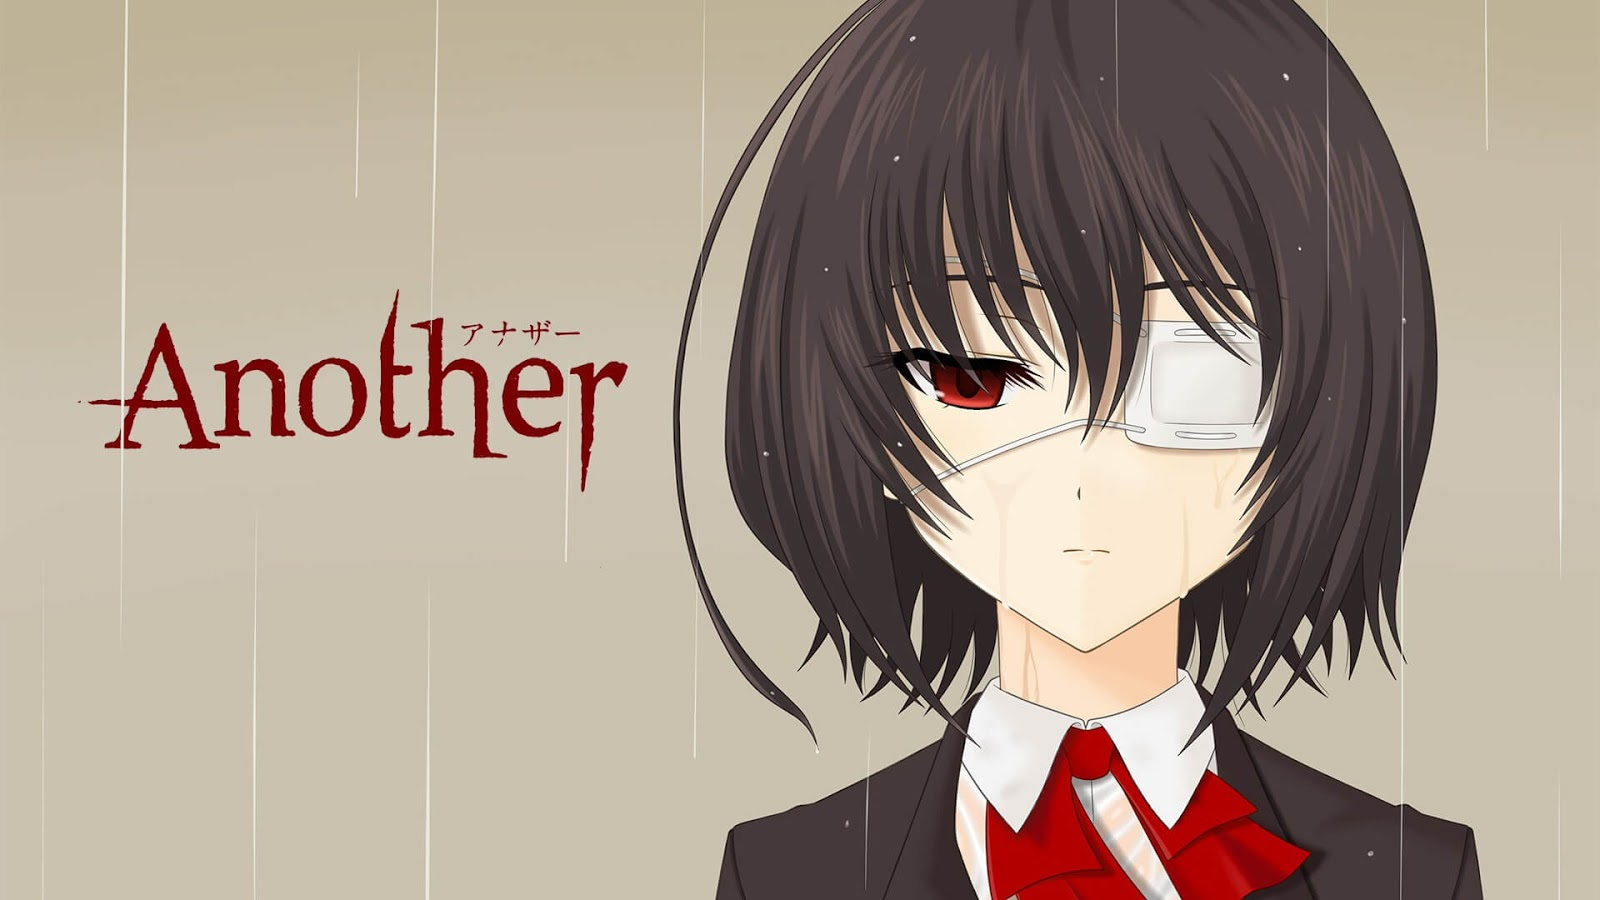 Download Another [BD] Sub Indo : Episode 1-12 END